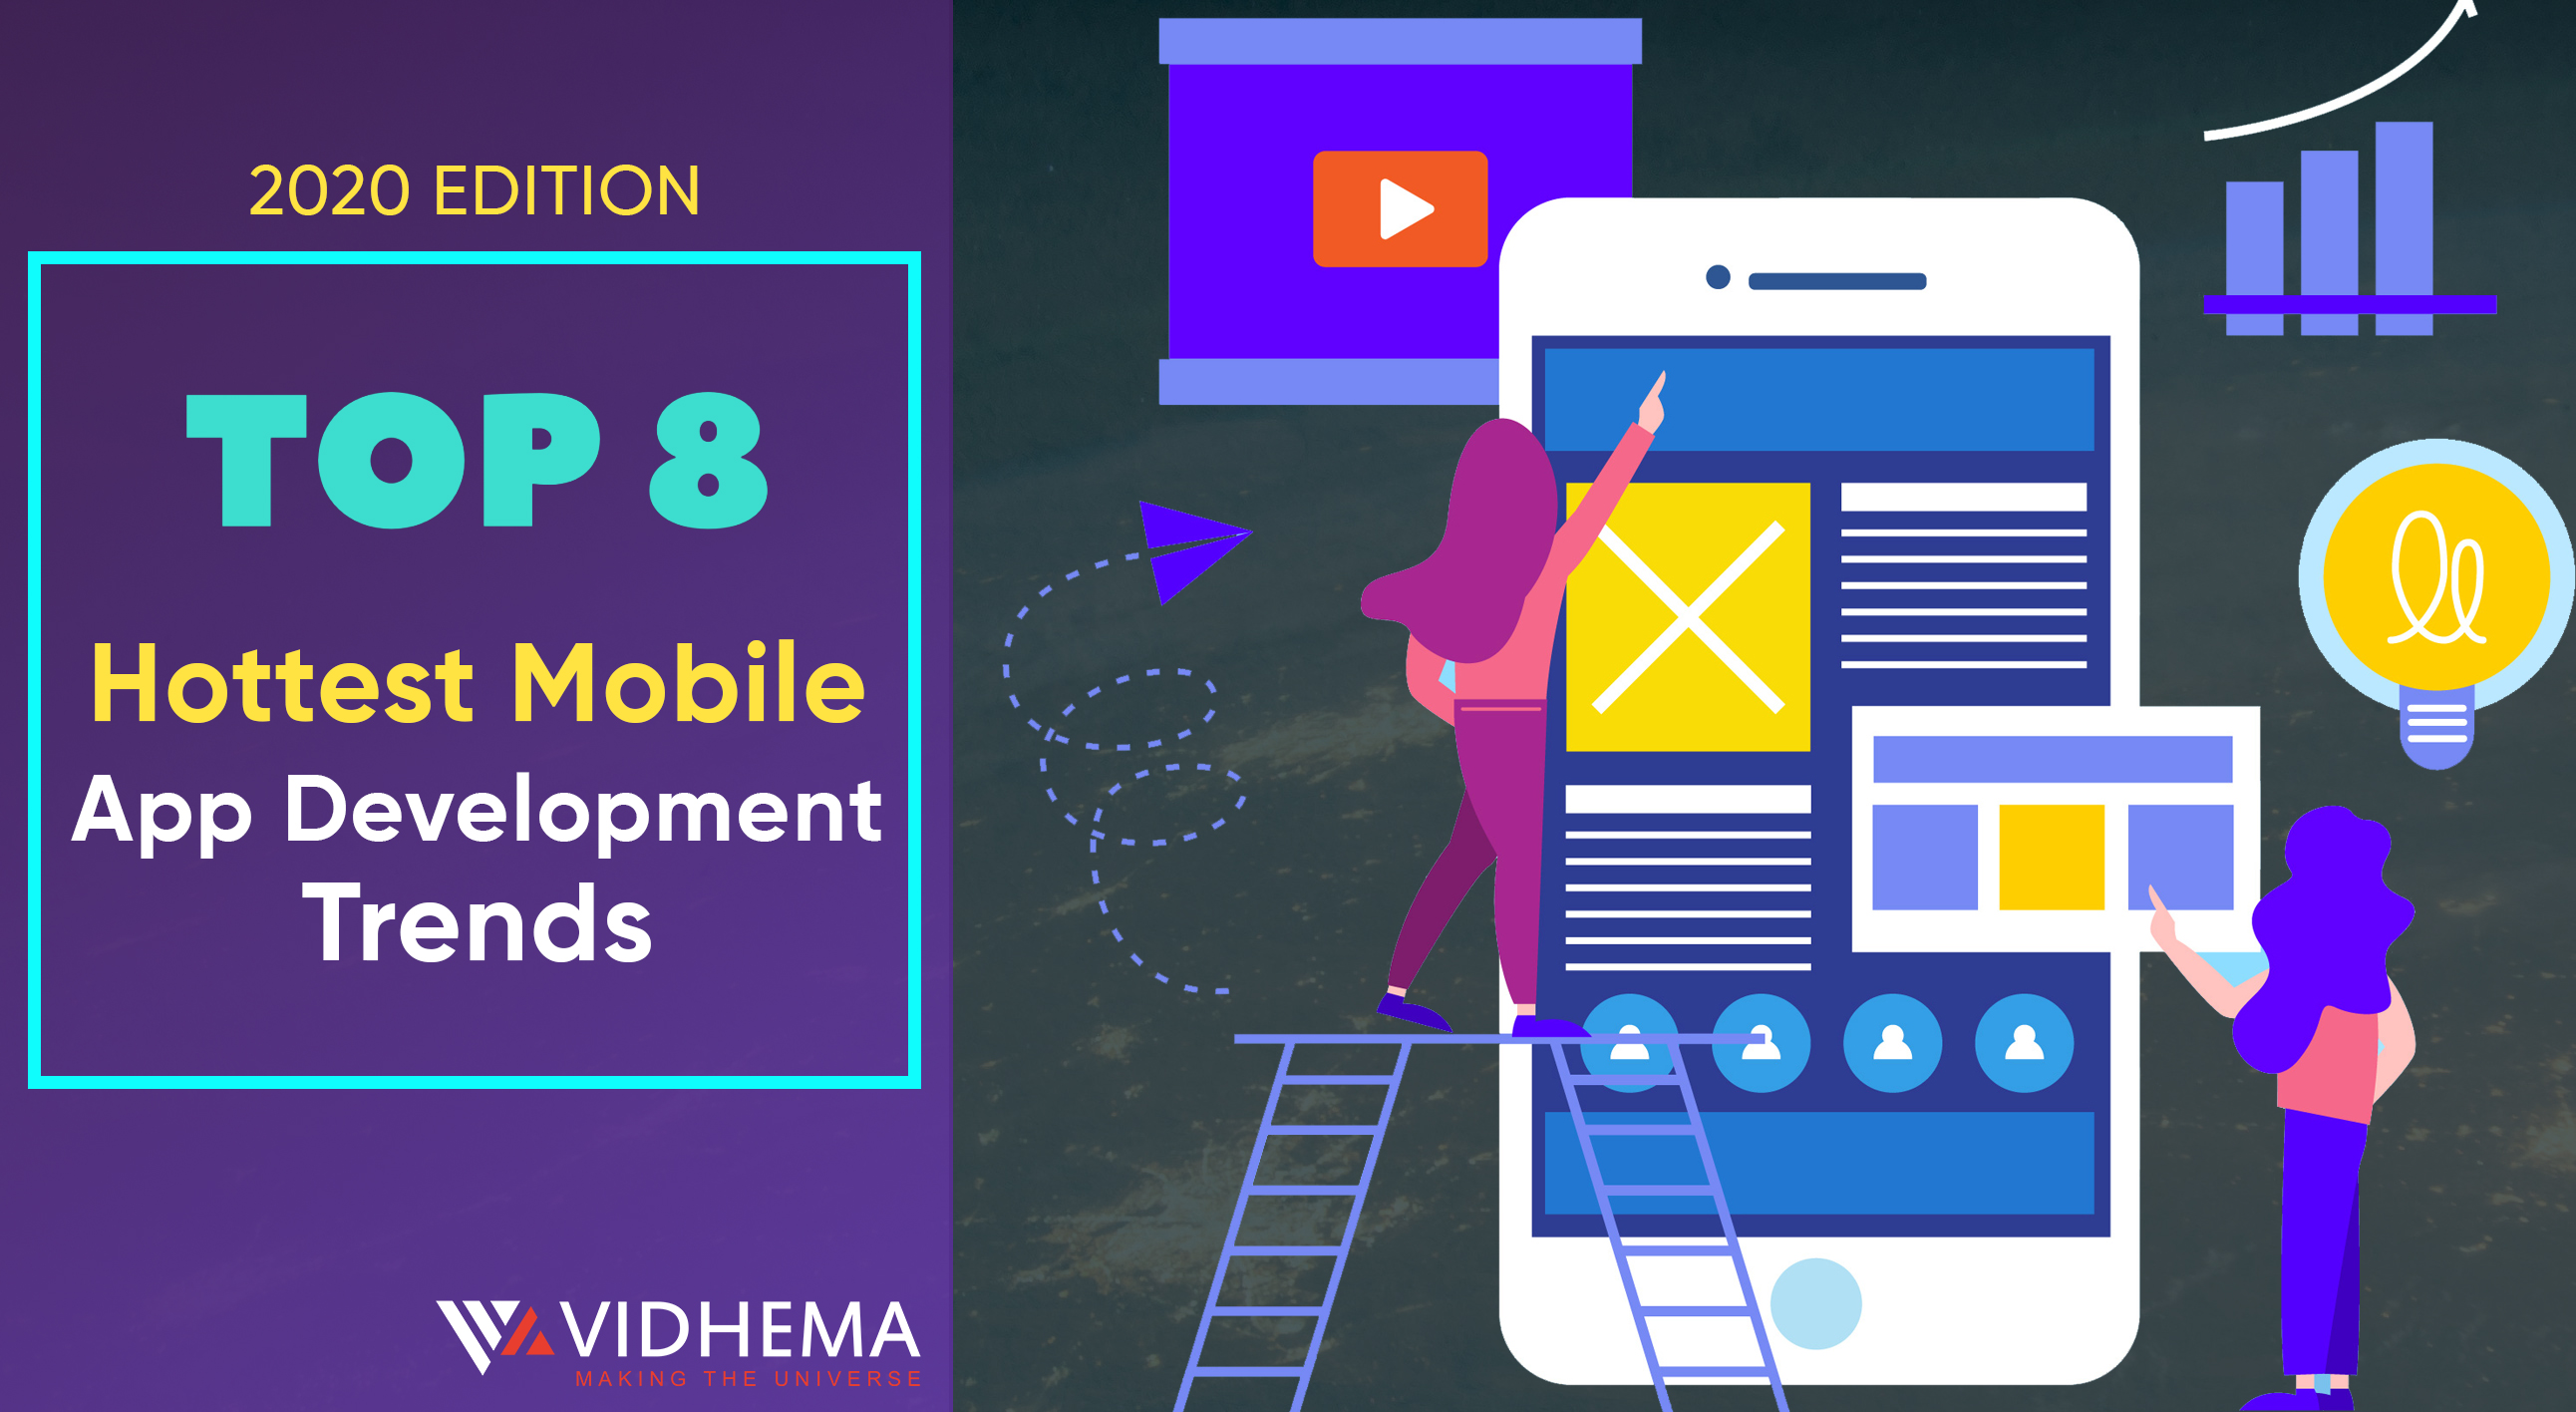 Top 8 Hottest Mobile App Development Trends For 2020